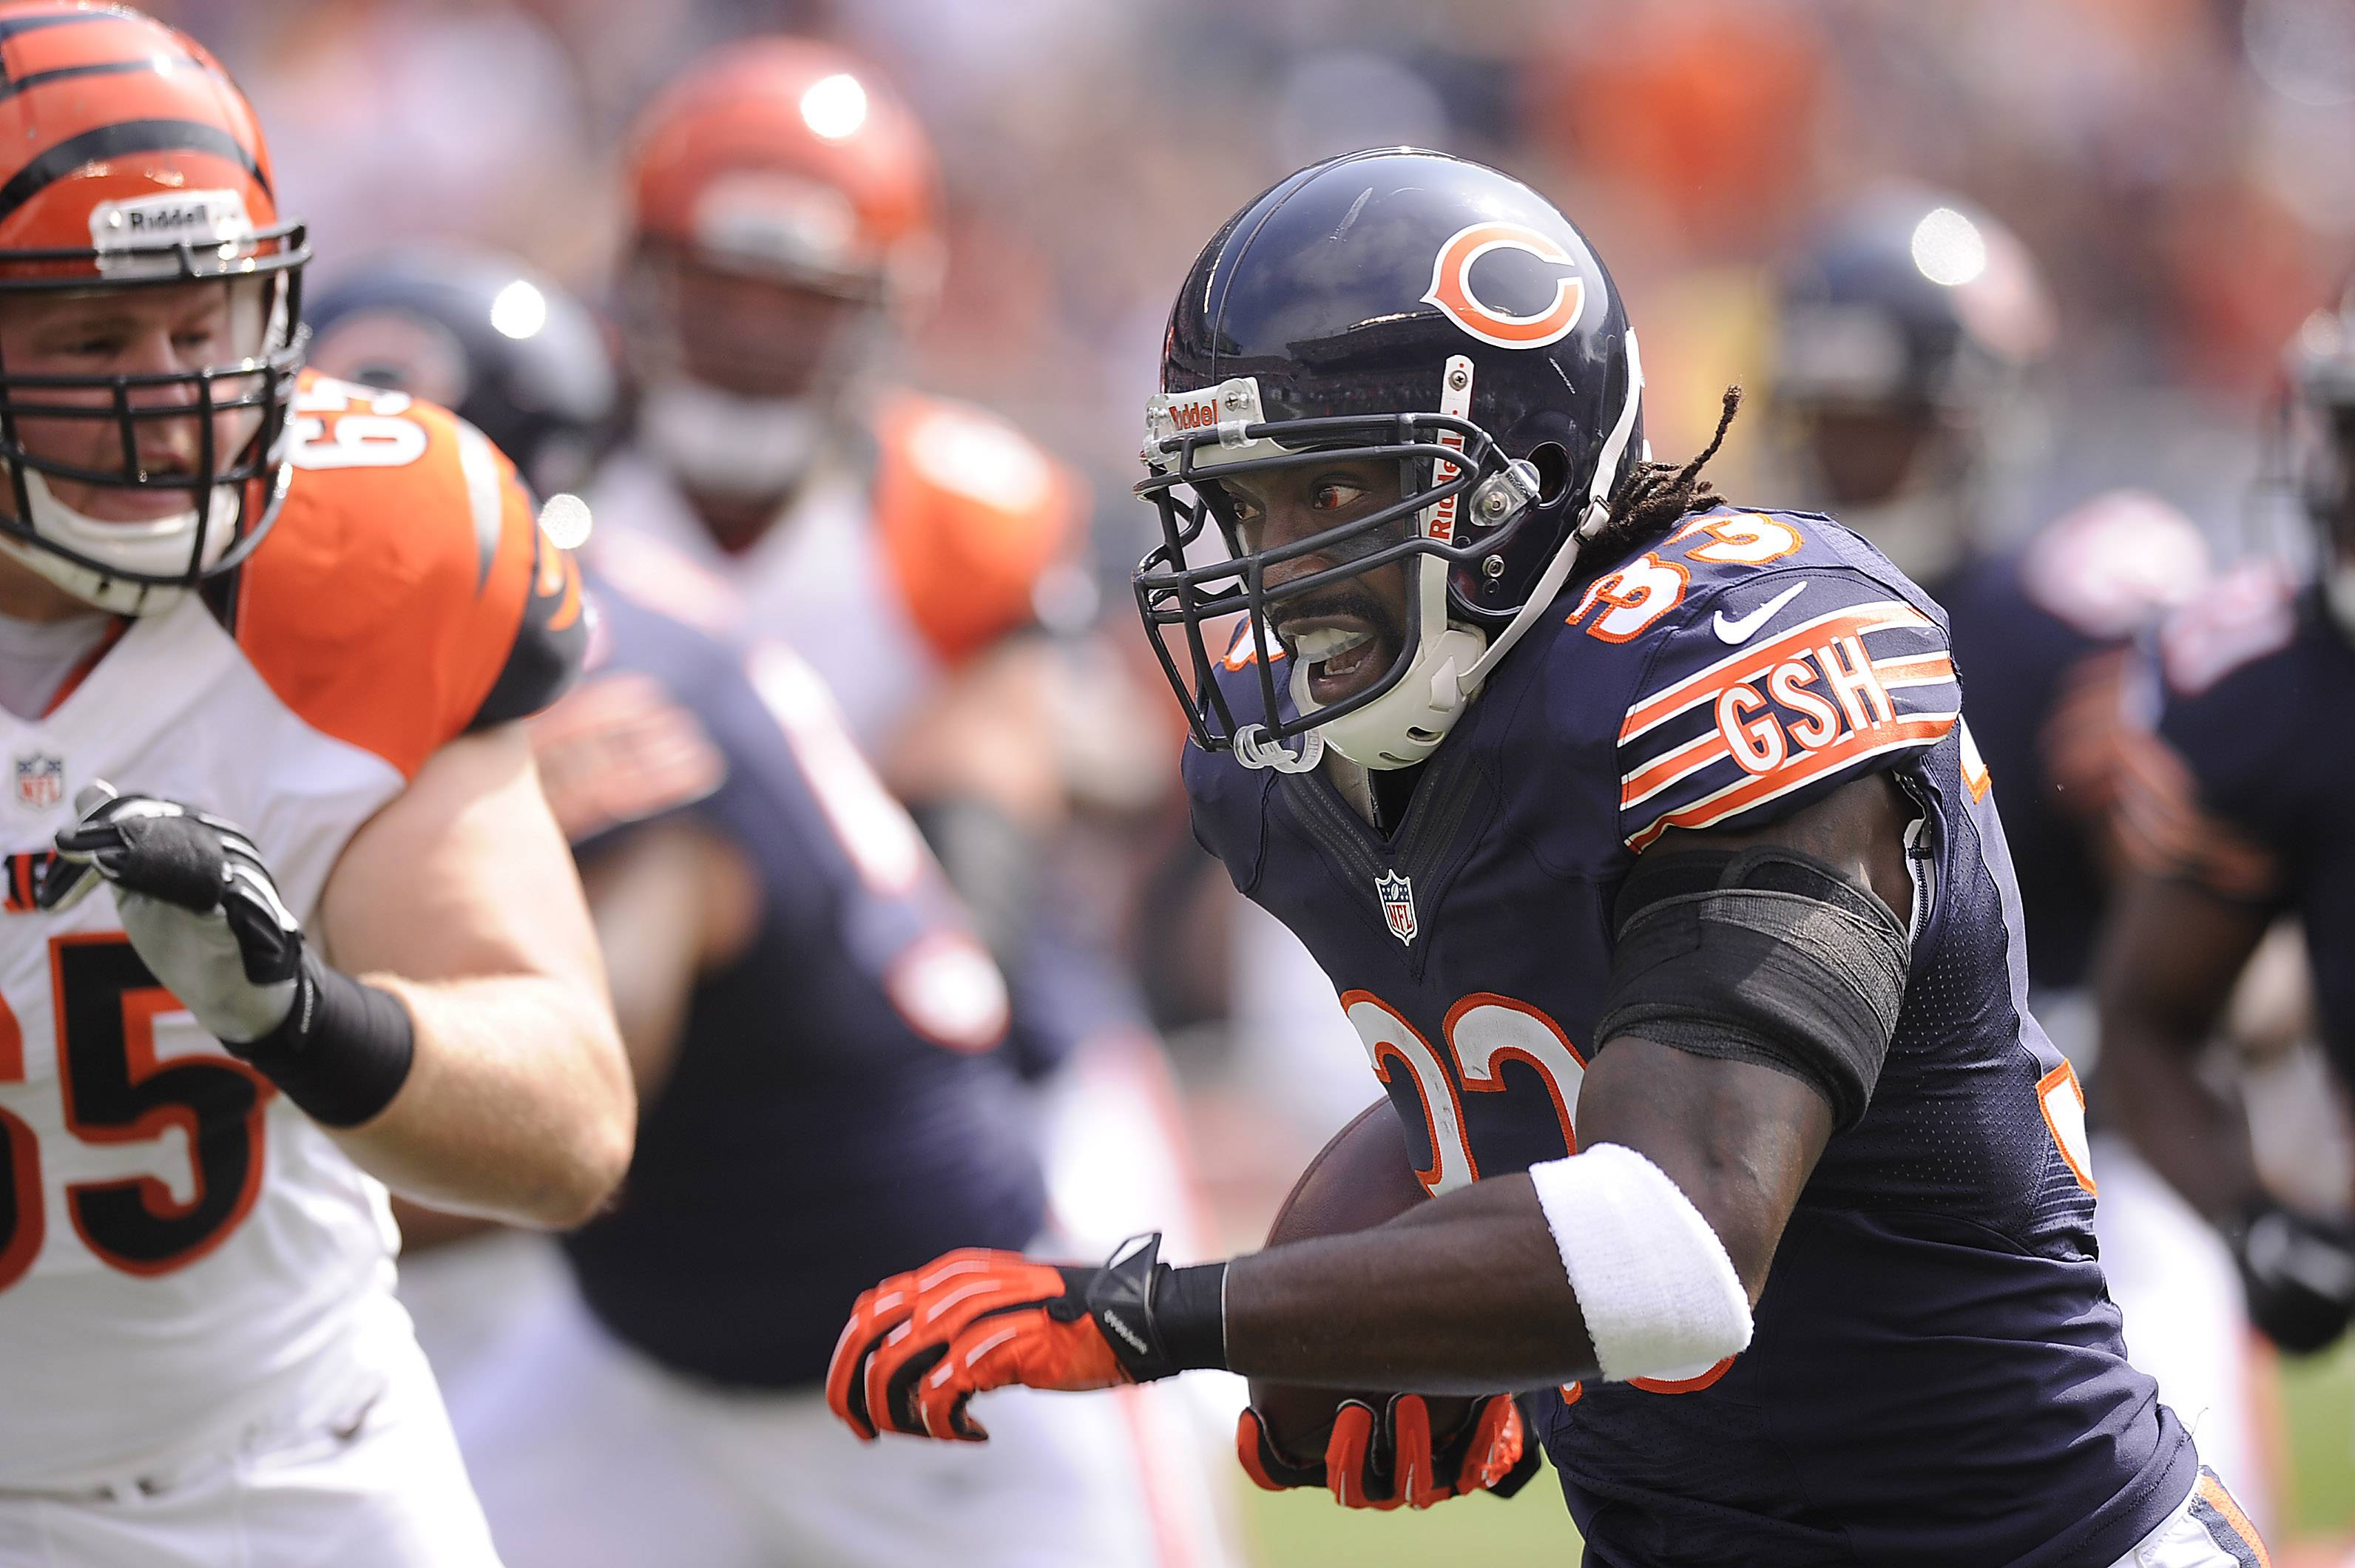 After testing the free-agency waters, Charles Tillman has agreed to a one-year contract to return to the Chicago Bears.